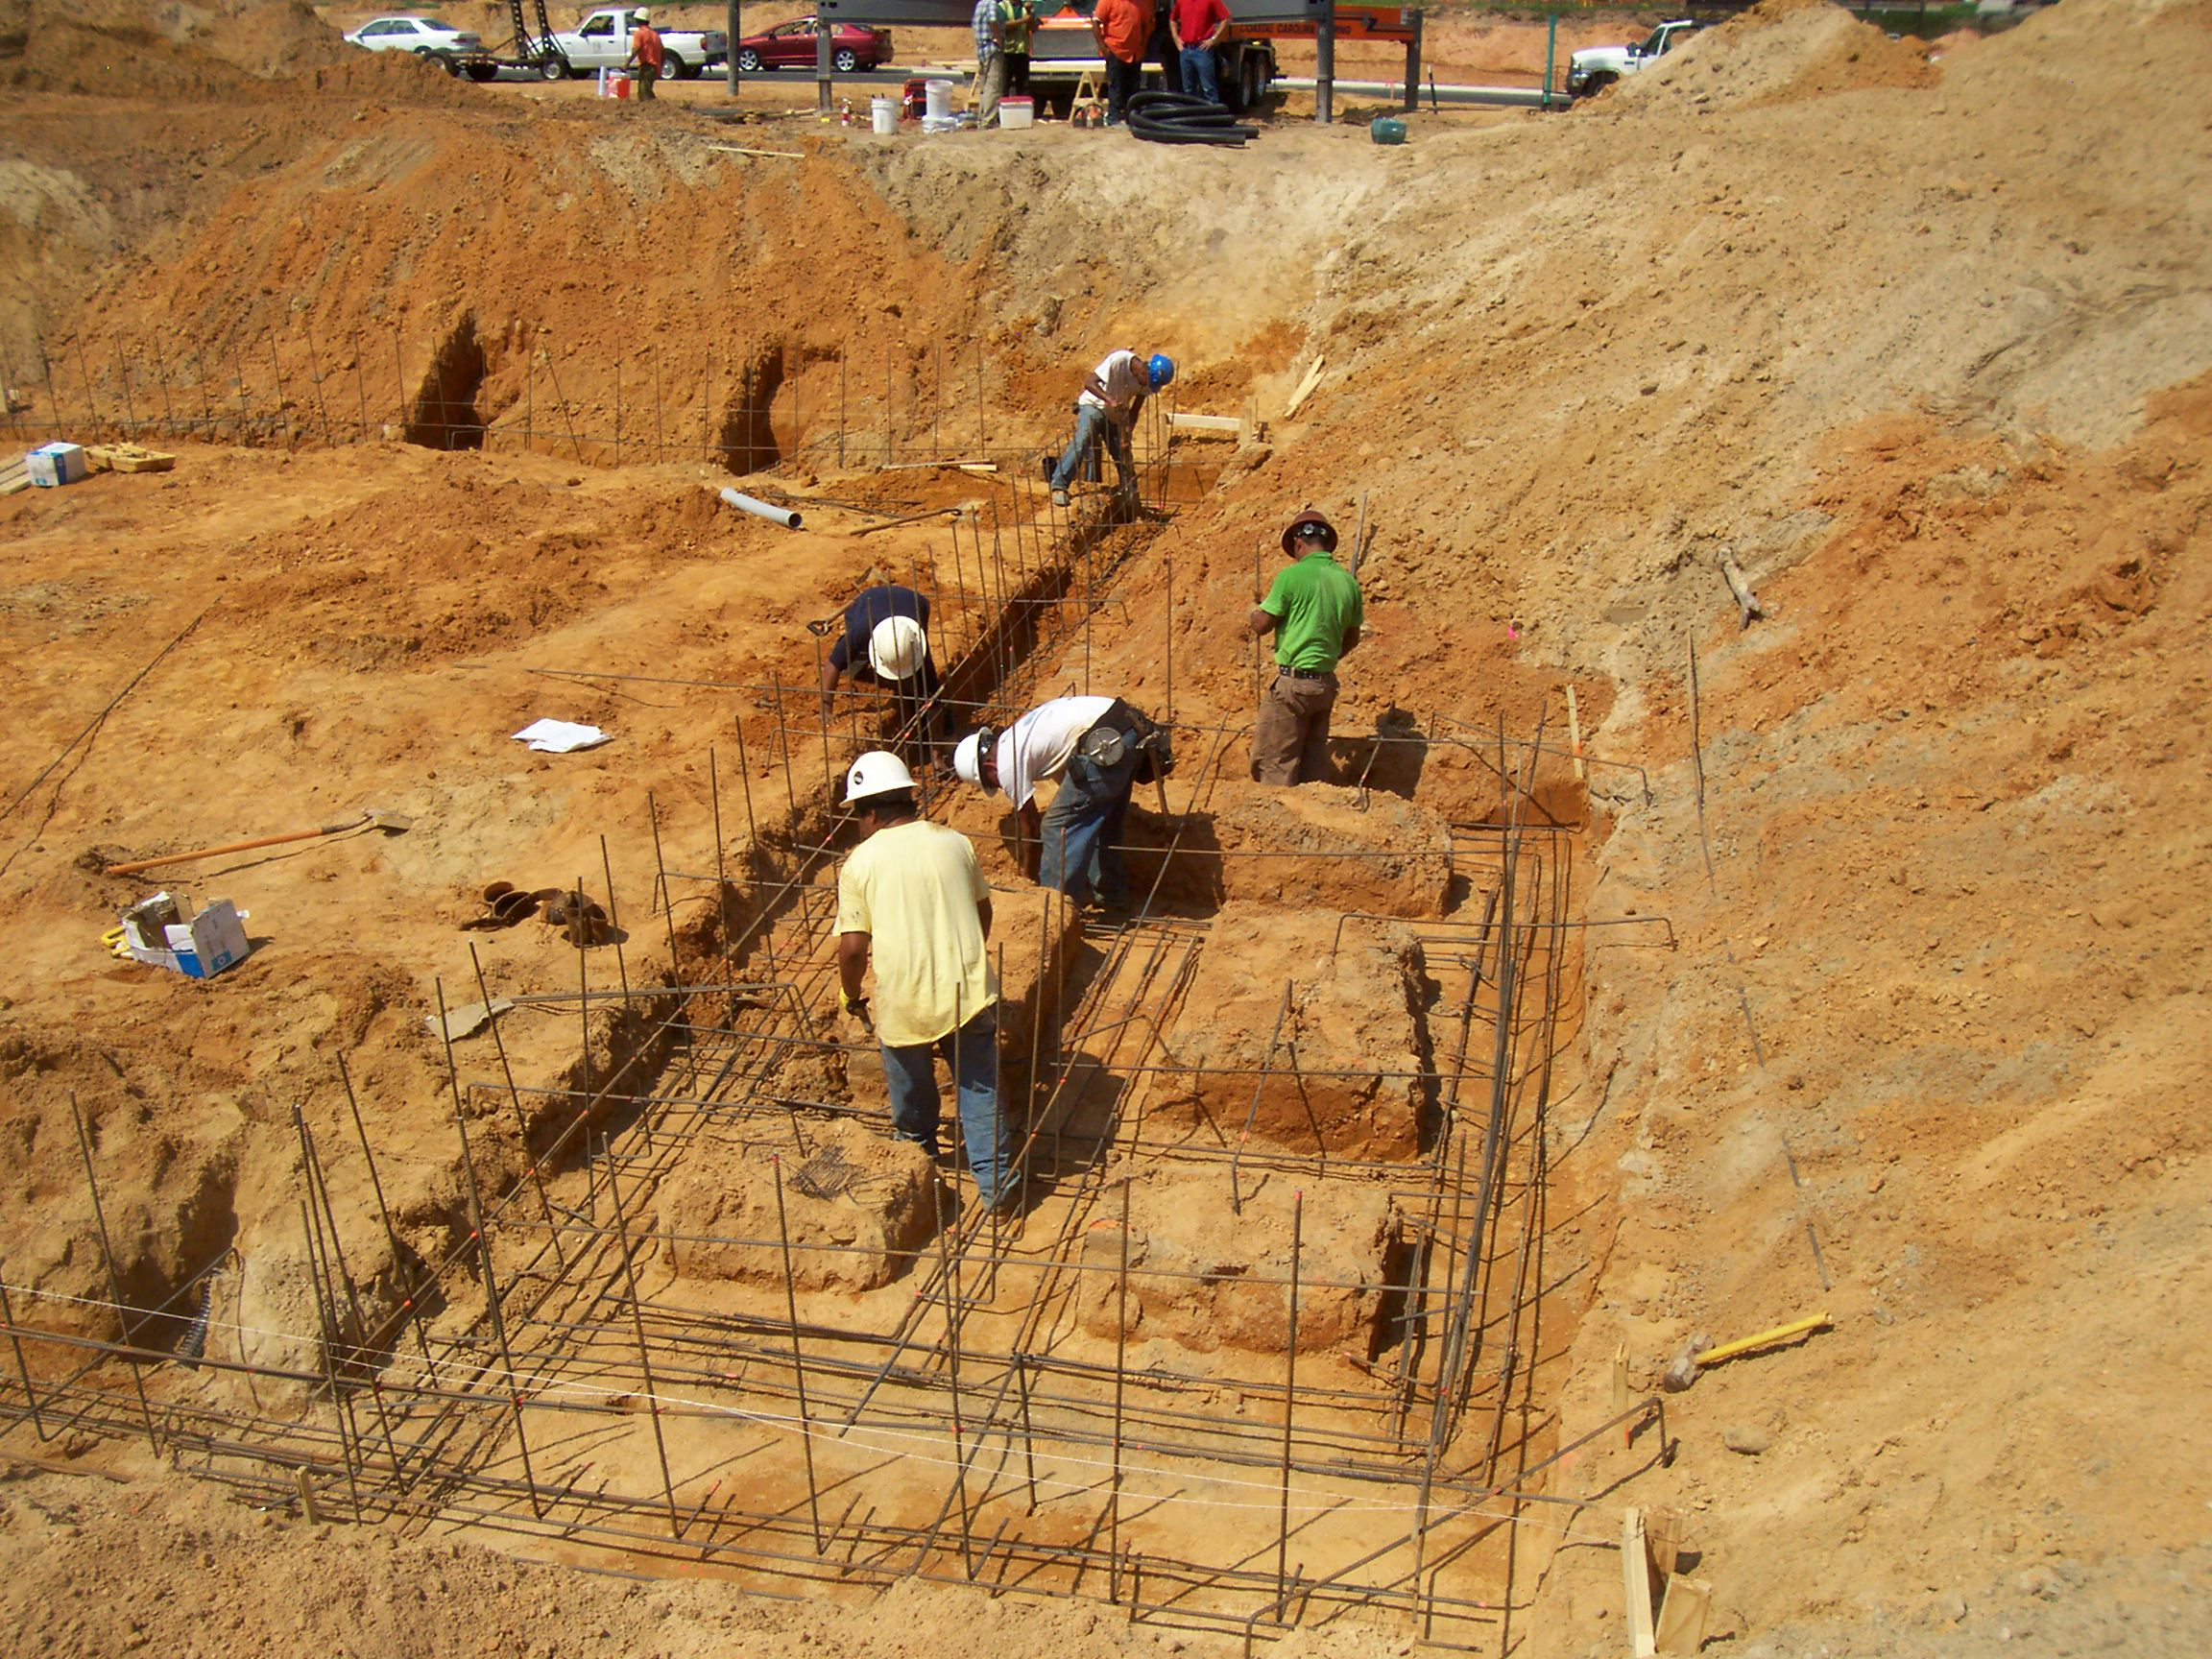 concrete-footing-preparation-25363e019b7aca.jpg